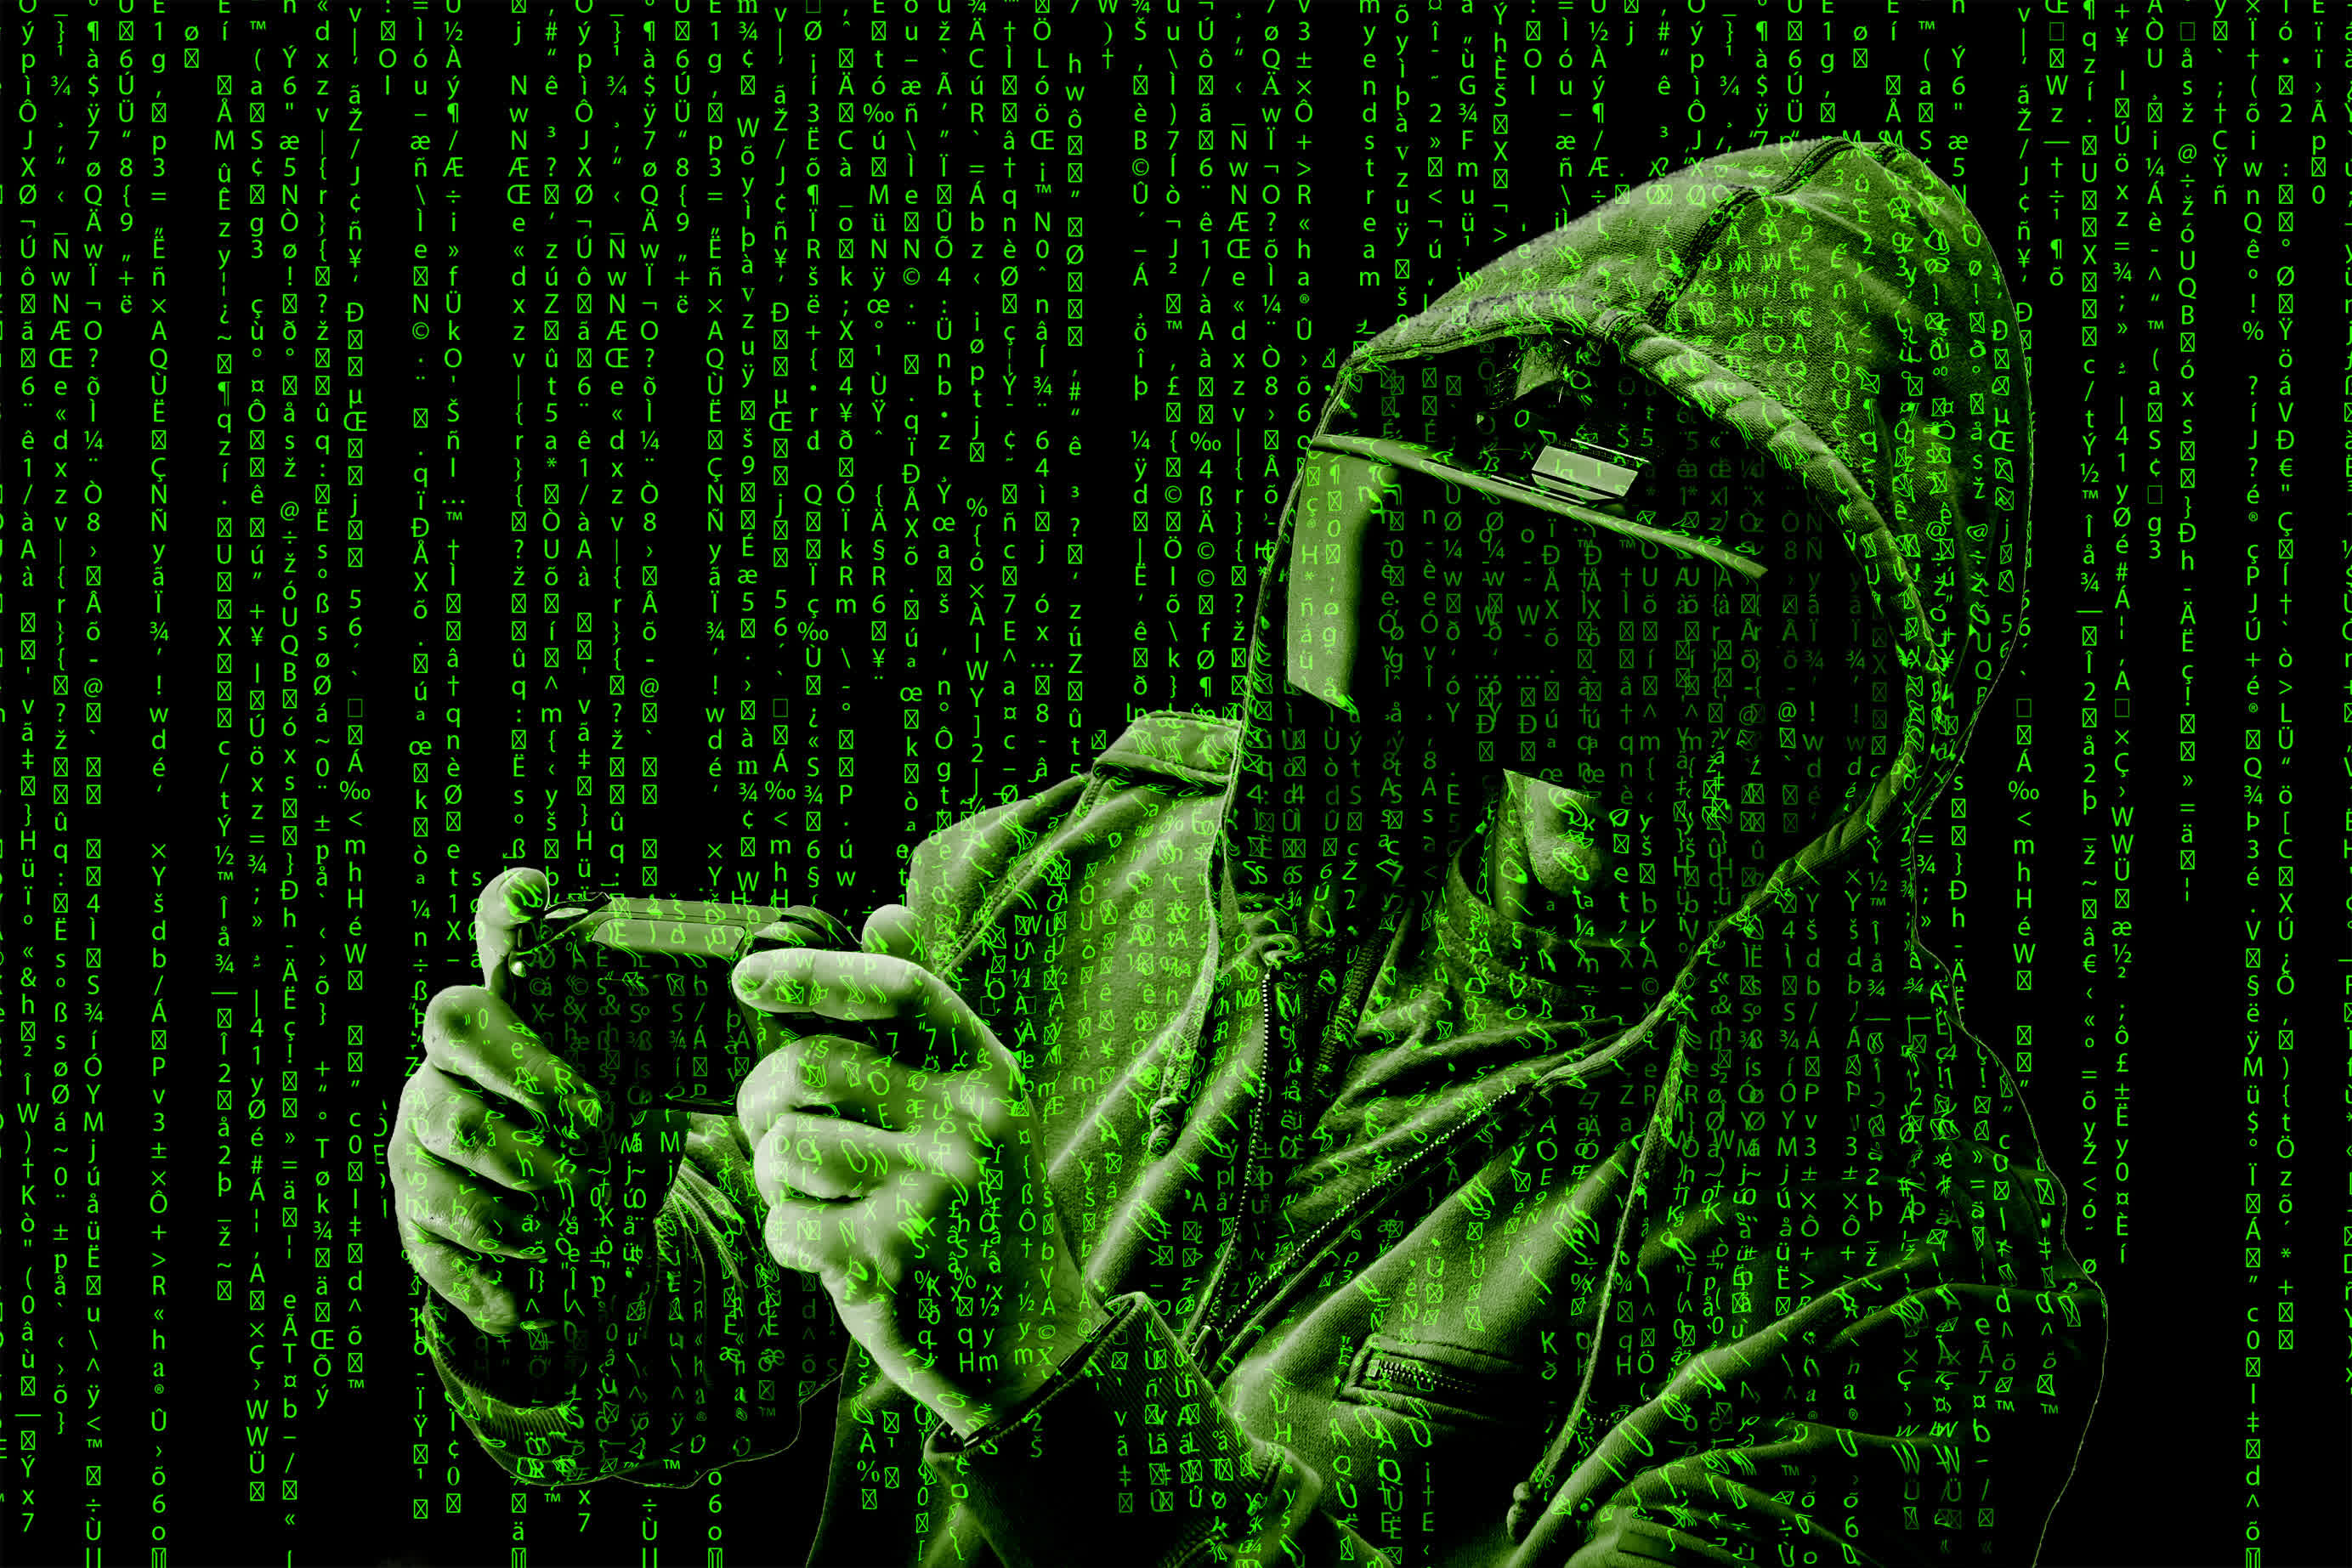 Kaspersky stopped 5.8 million malware attacks 'disguised as popular PC games' in 2020